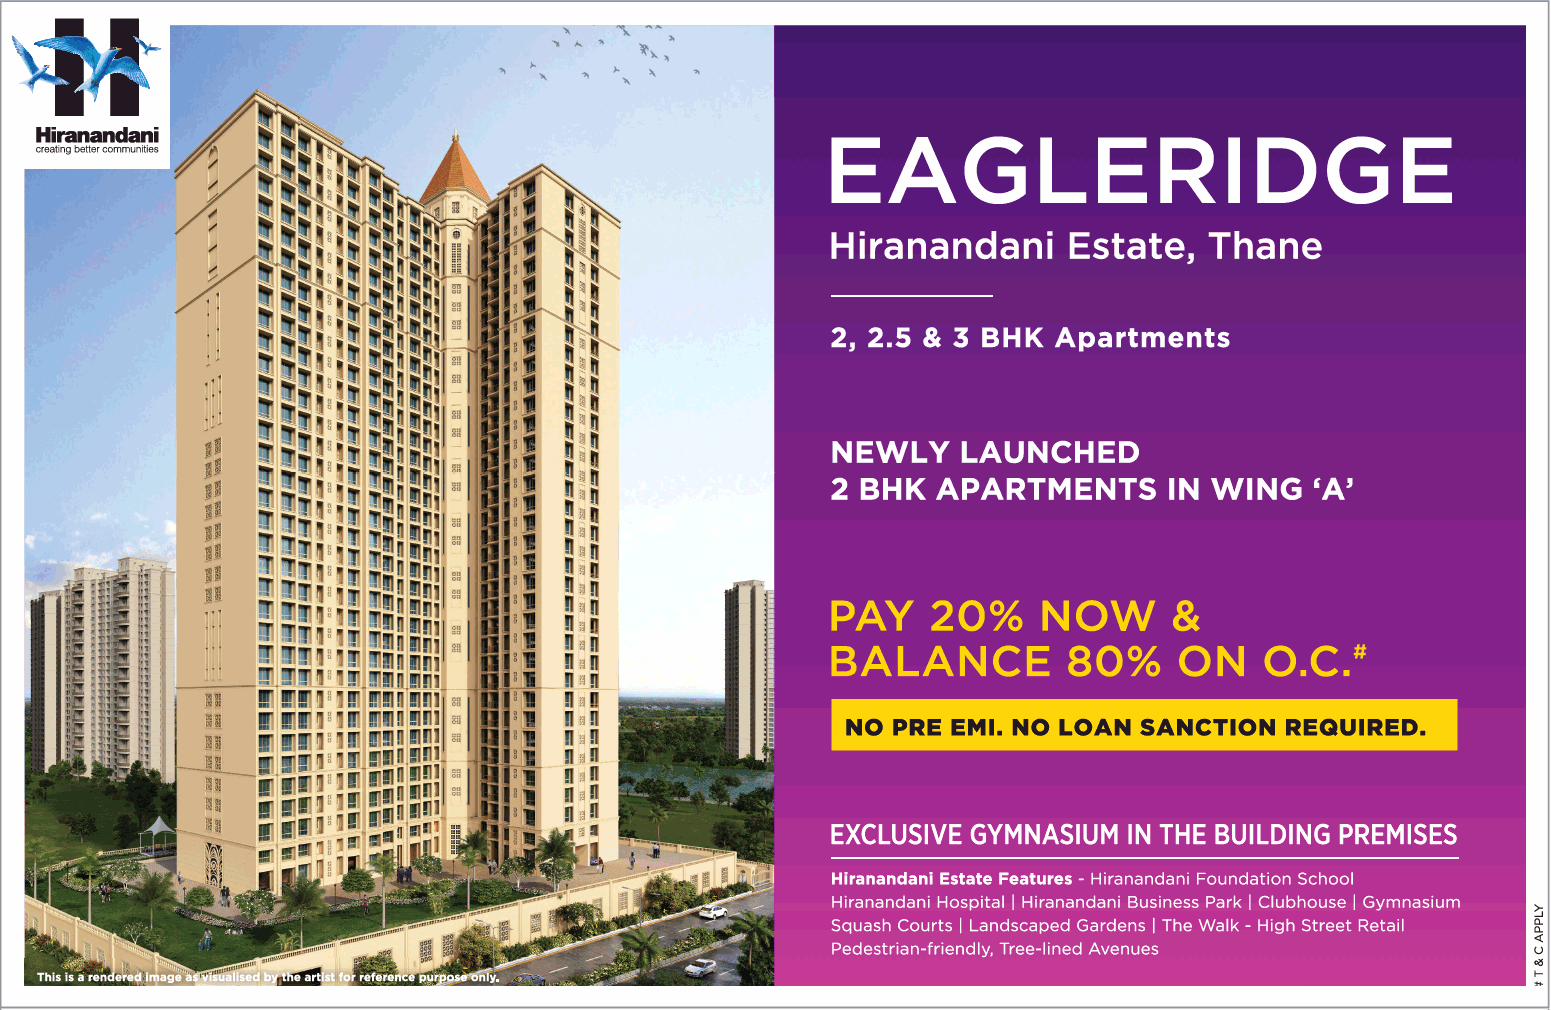 Hiranandani Eagleridge newly launched 2 bhk apartment in Wing A in Mumbai